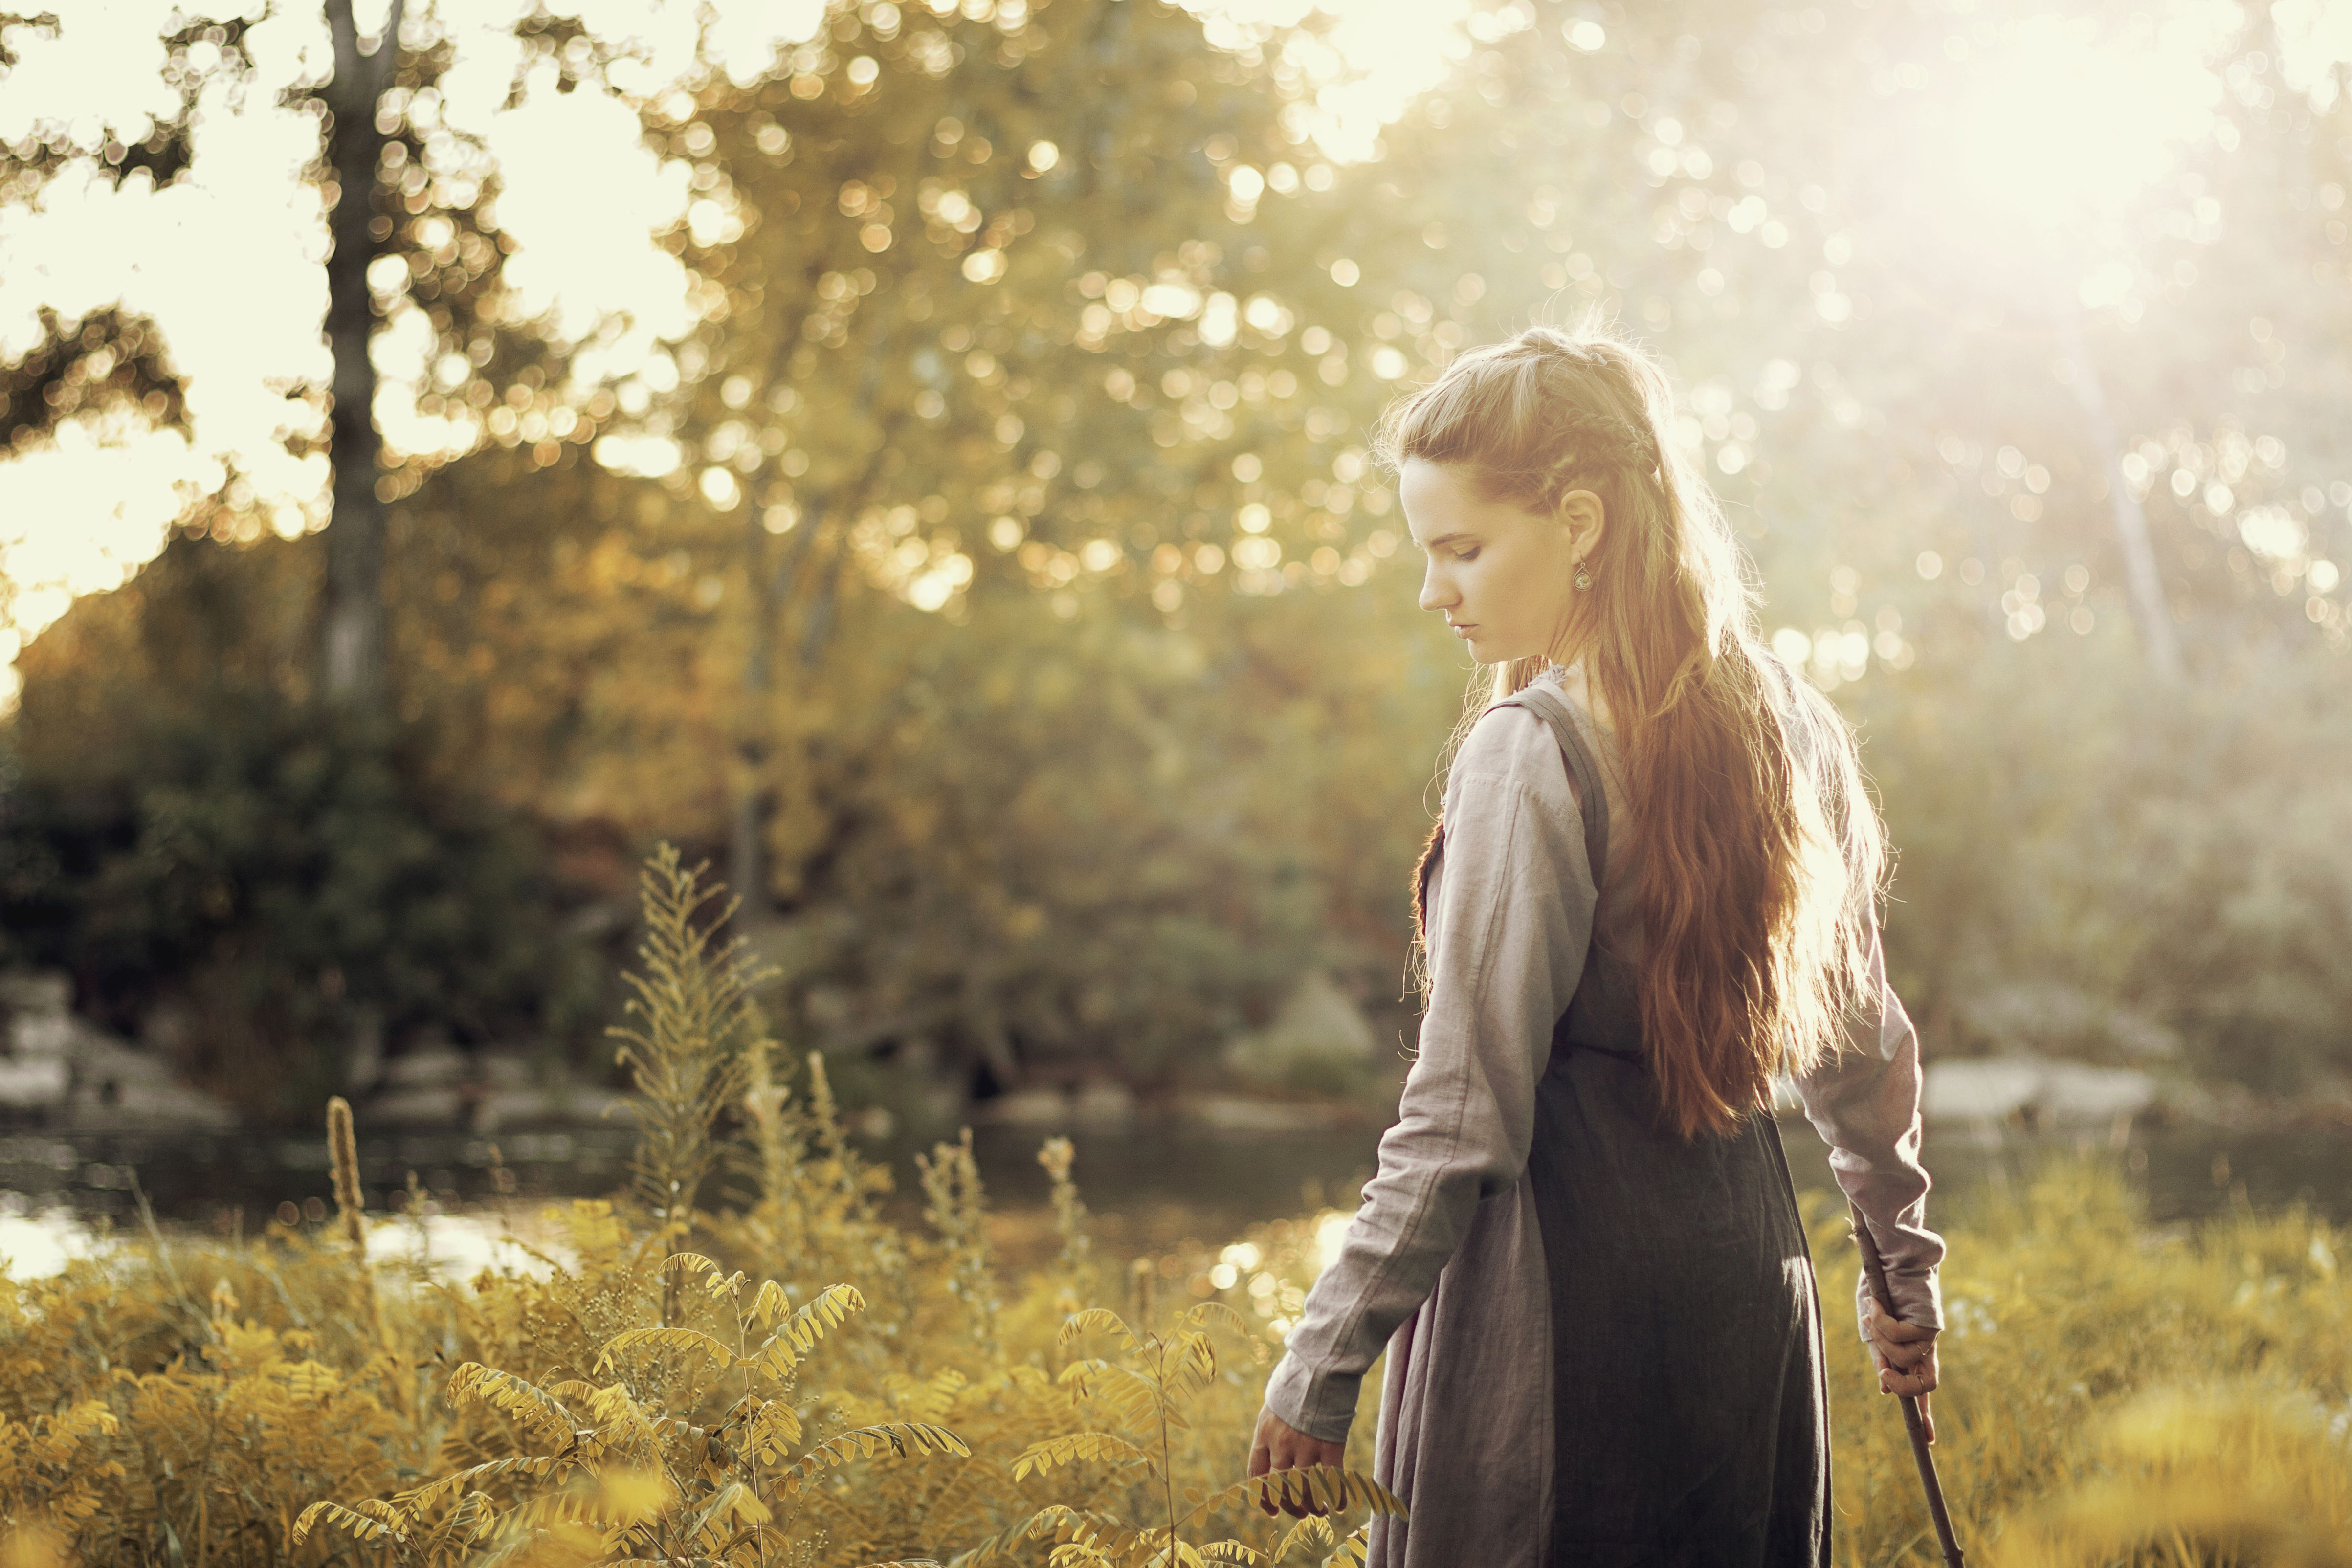 Young woman with long hair in period viking costume looks down, turning, outdoors and sunlit